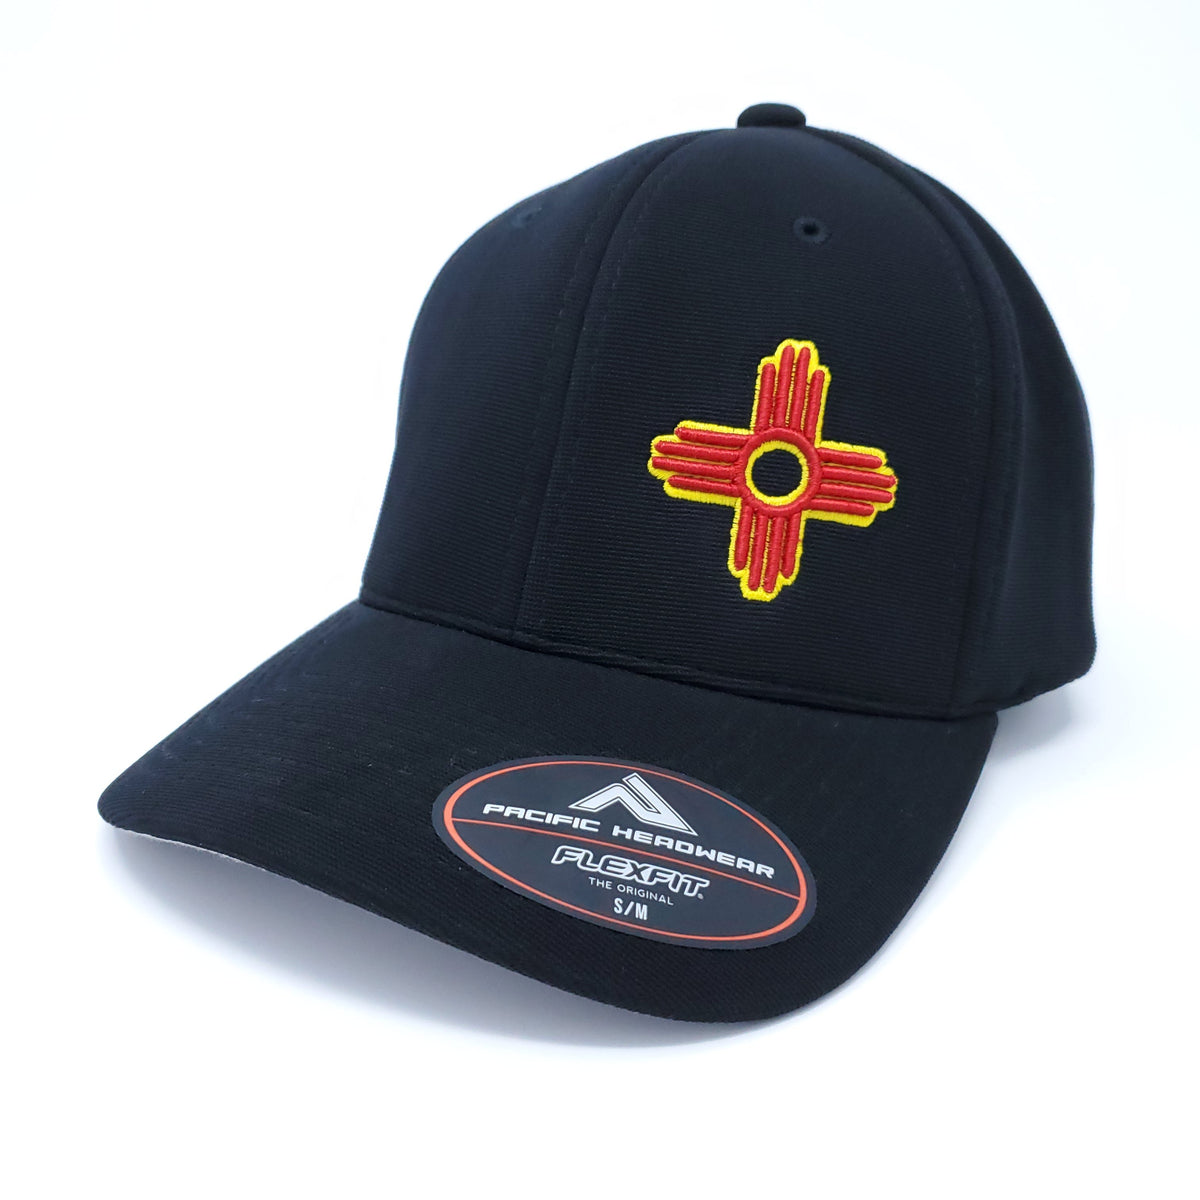 On Field Pro-Level Performance Embroidered Zia Fitted FlexFit Hat - Ragged Apparel Screen Printing and Signs - www.nmshirts.com